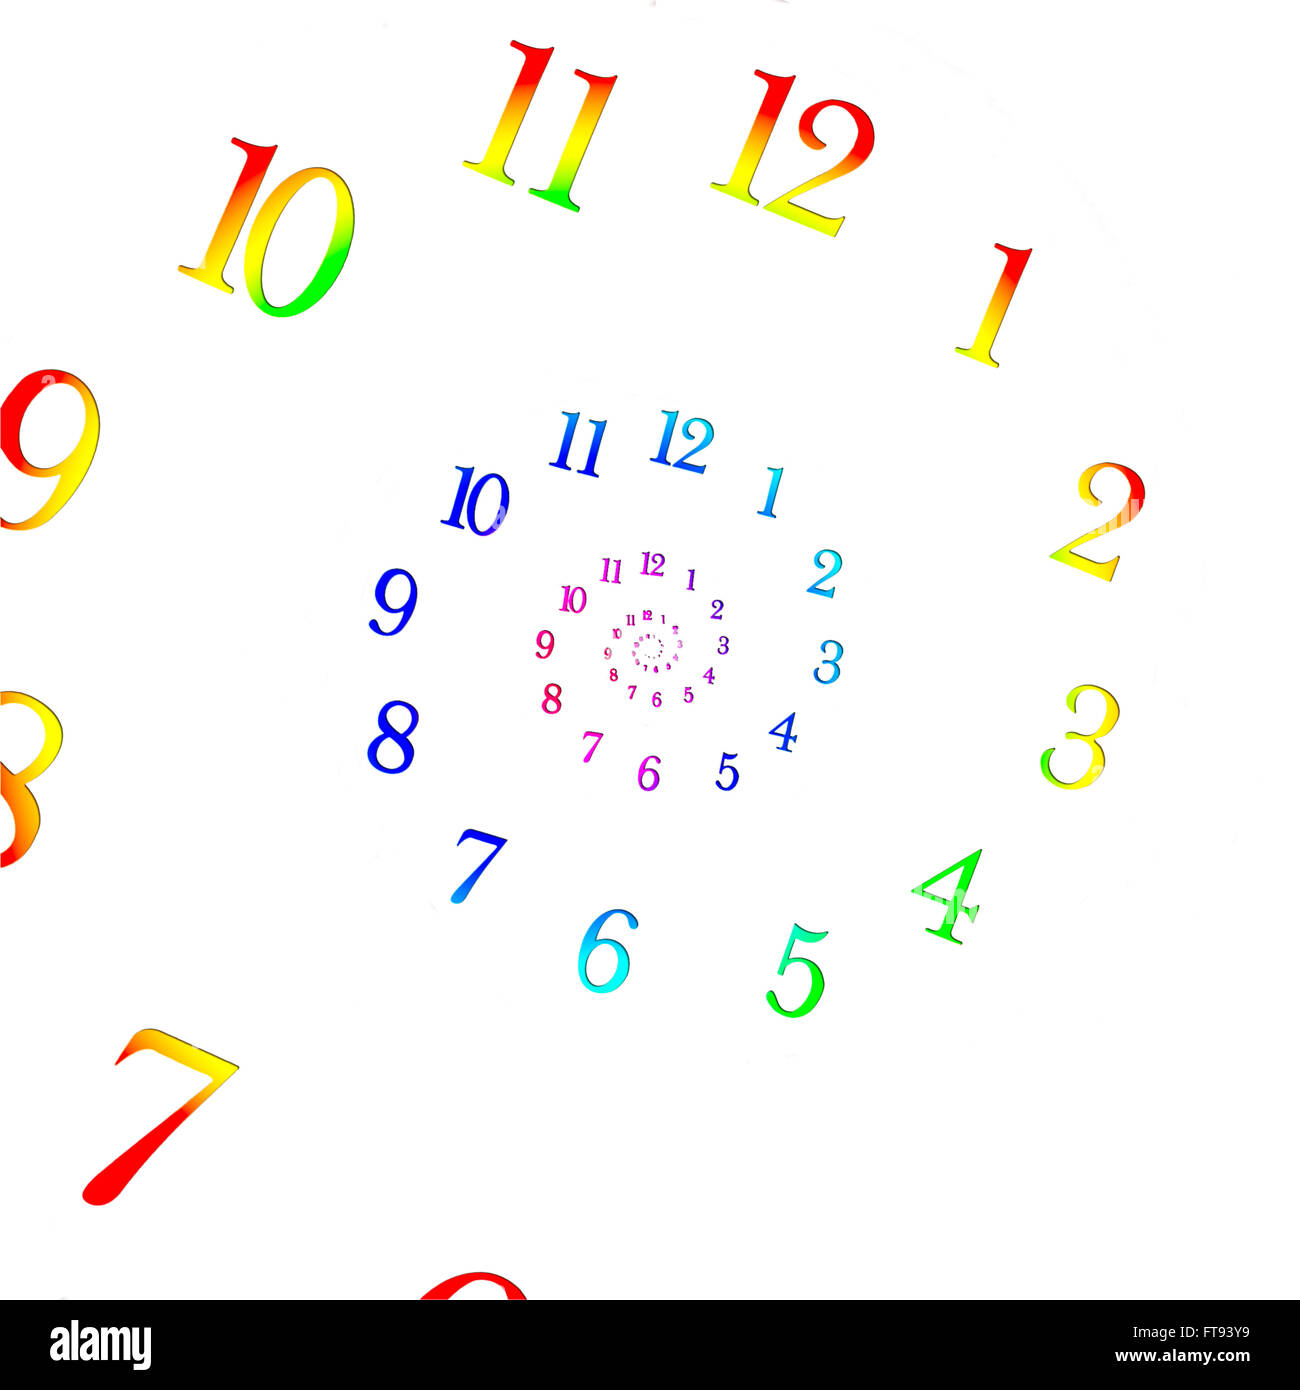 Rainbow coloured dial shrinking to infinity. Time Warp - Time Dilation. Quantum mechanics meets general relativity. - Stock Image